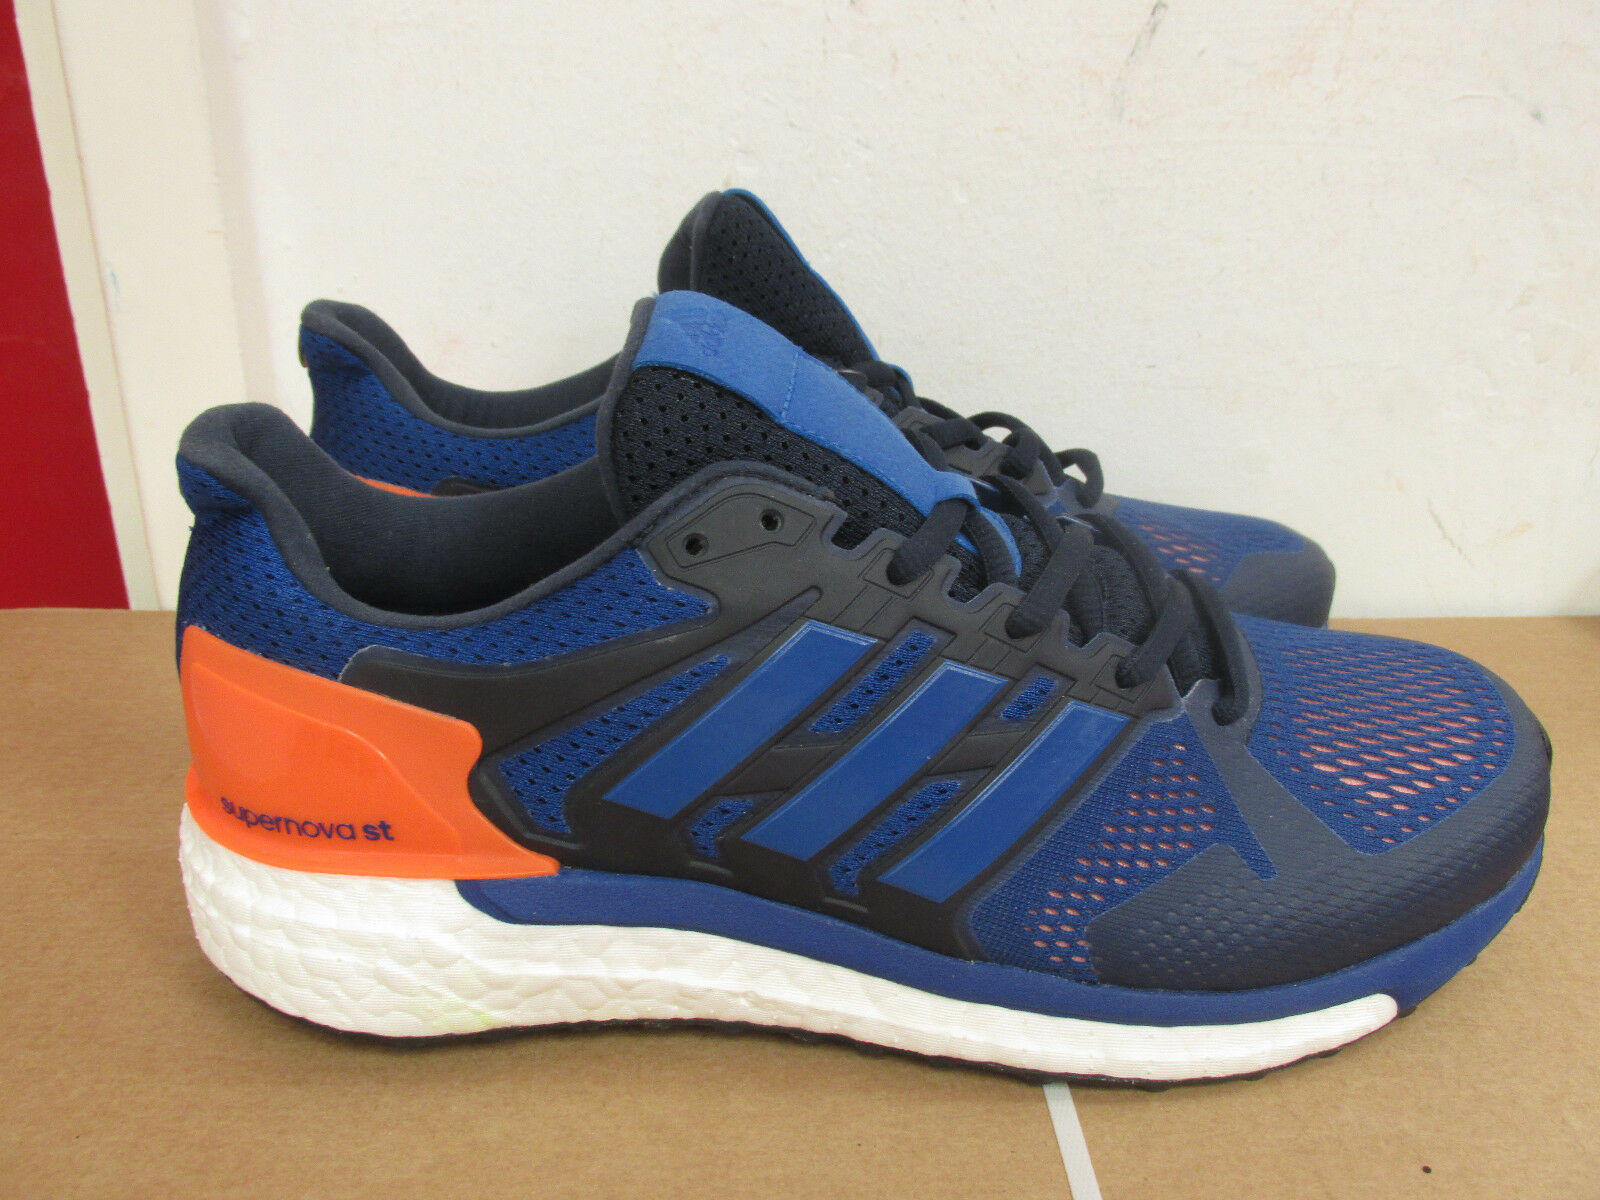 Adidas Supernova Boost ST CG3066 mens trainers Turnschuhe SAMPLE